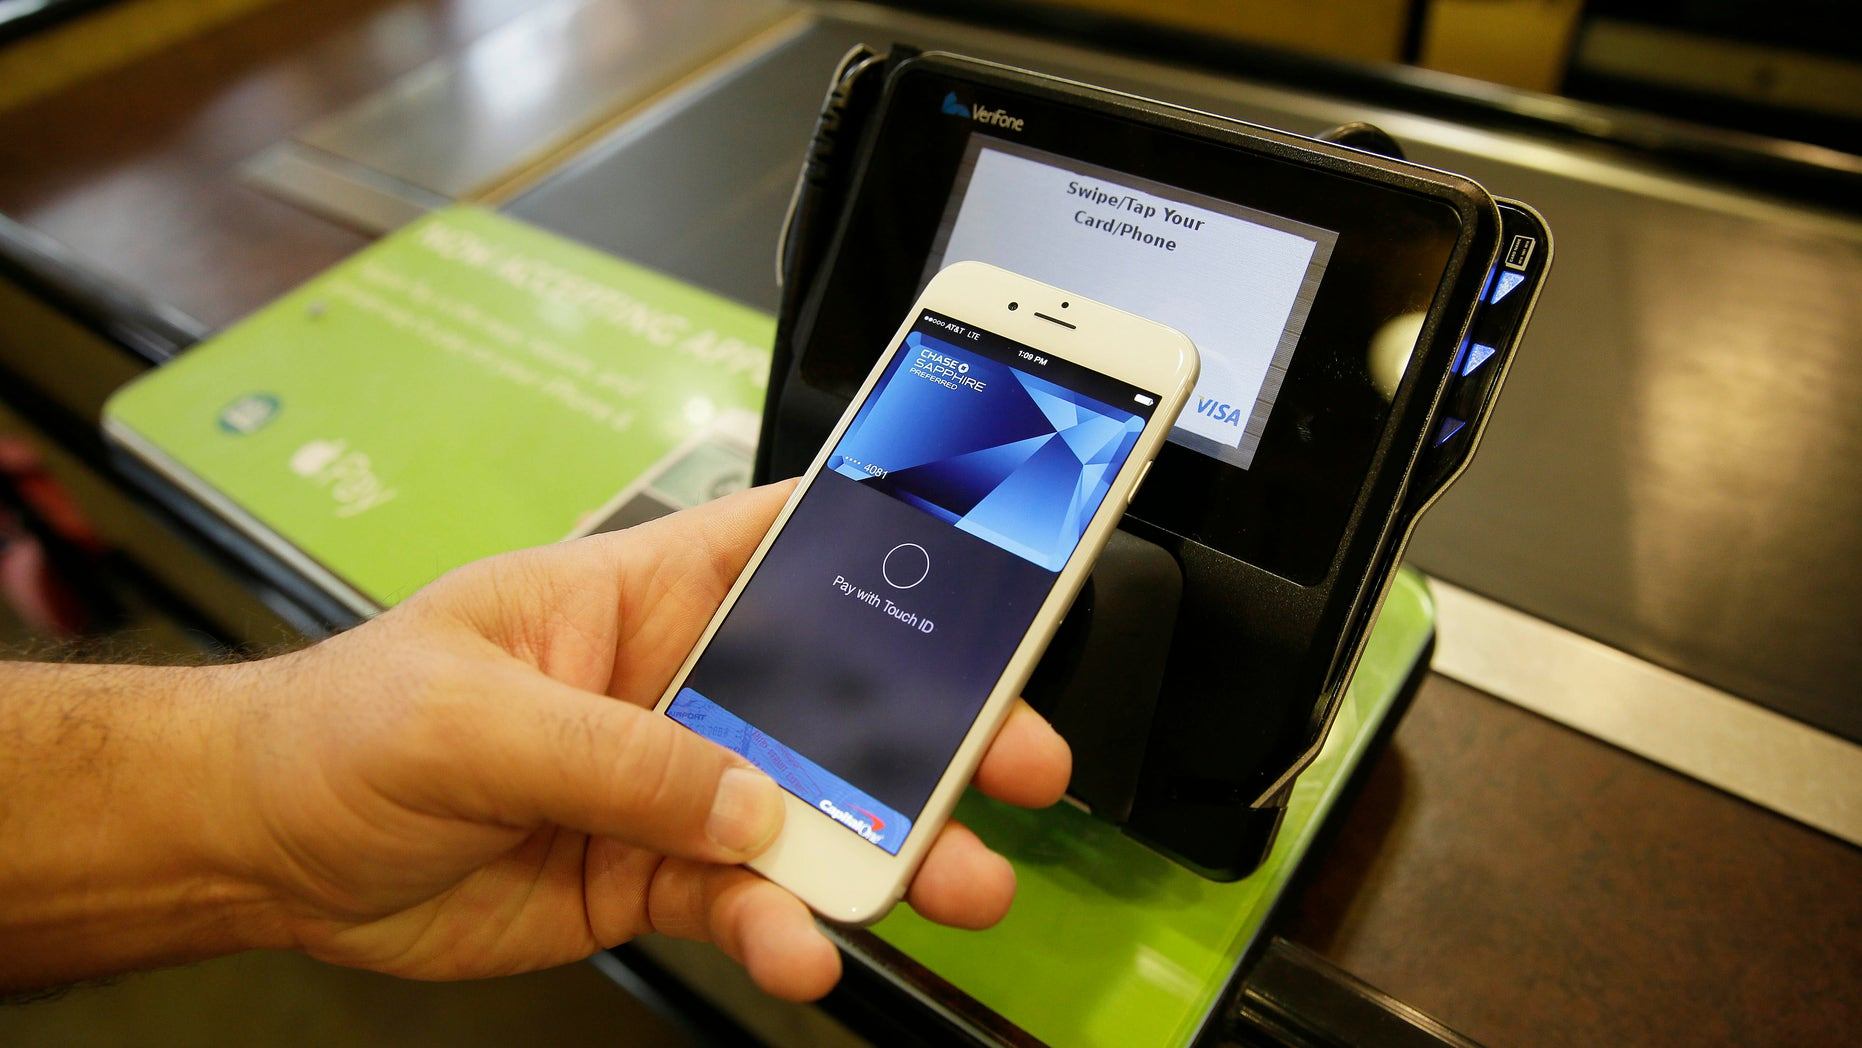 In this photo taken Friday, Oct. 17, 2014, Eddy Cue, Apple Senior Vice President of Internet Software and Services, demonstrates the new Apple Pay mobile payment system at a Whole Foods store in Cupertino, Calif. The new system launches on Monday. (AP Photo/Eric Risberg)